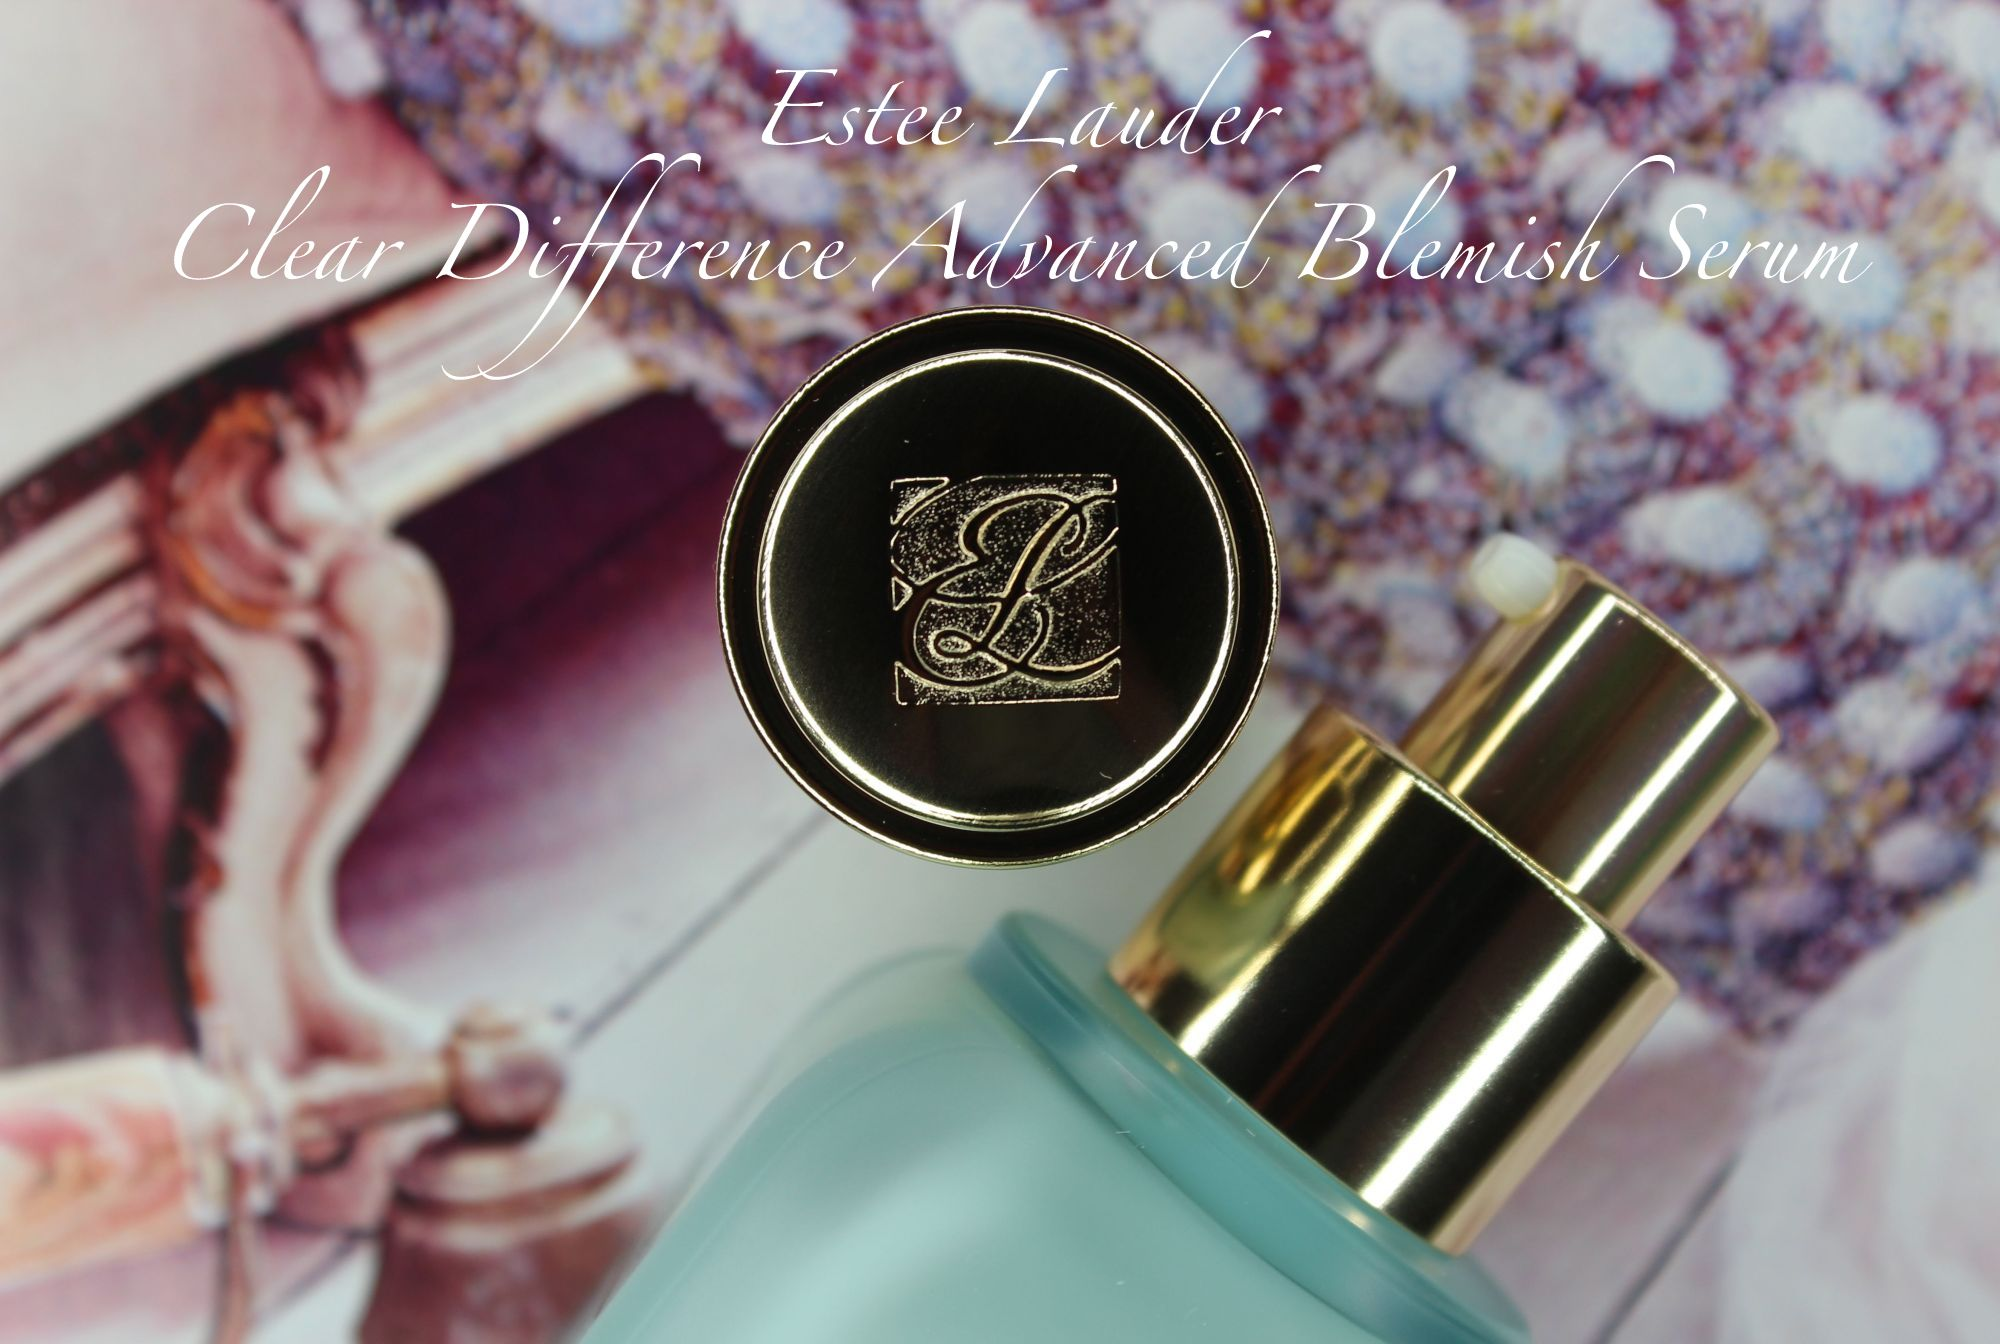 TOP 16 - Estee Lauder Clear Difference Advanced Blemish Serum 2-kopia